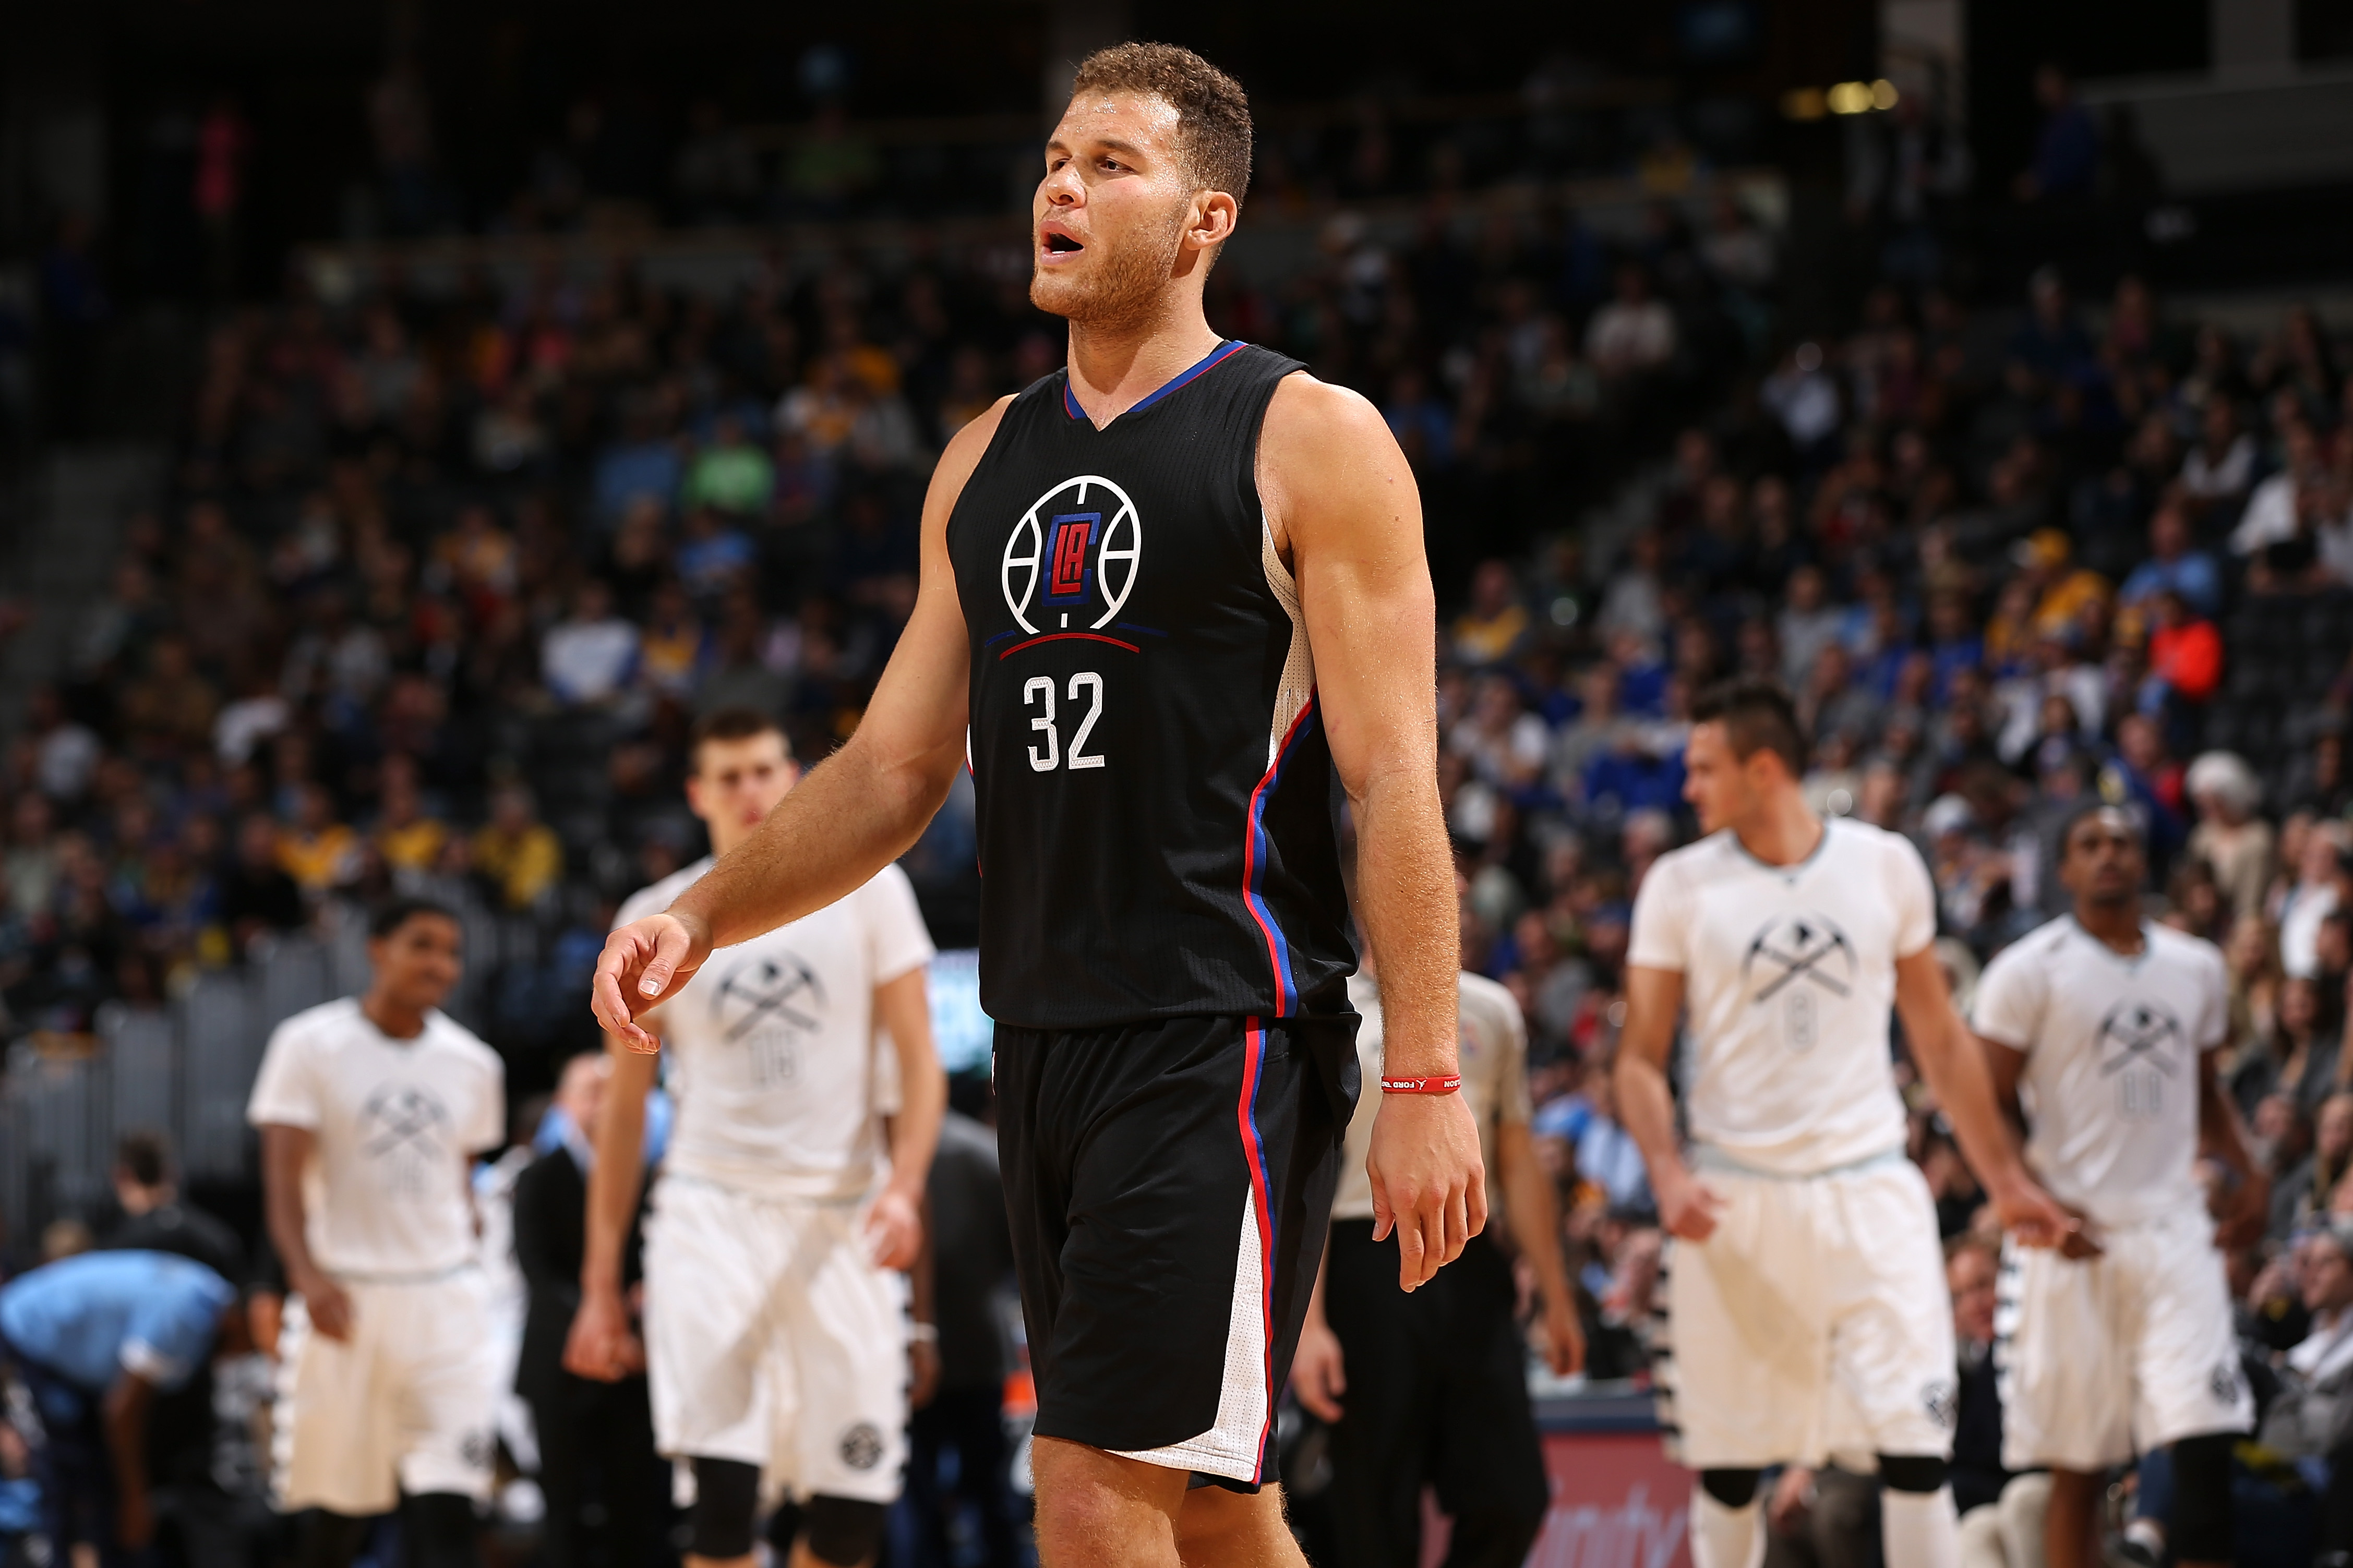 blake griffin news: la clippers star talks about fight with